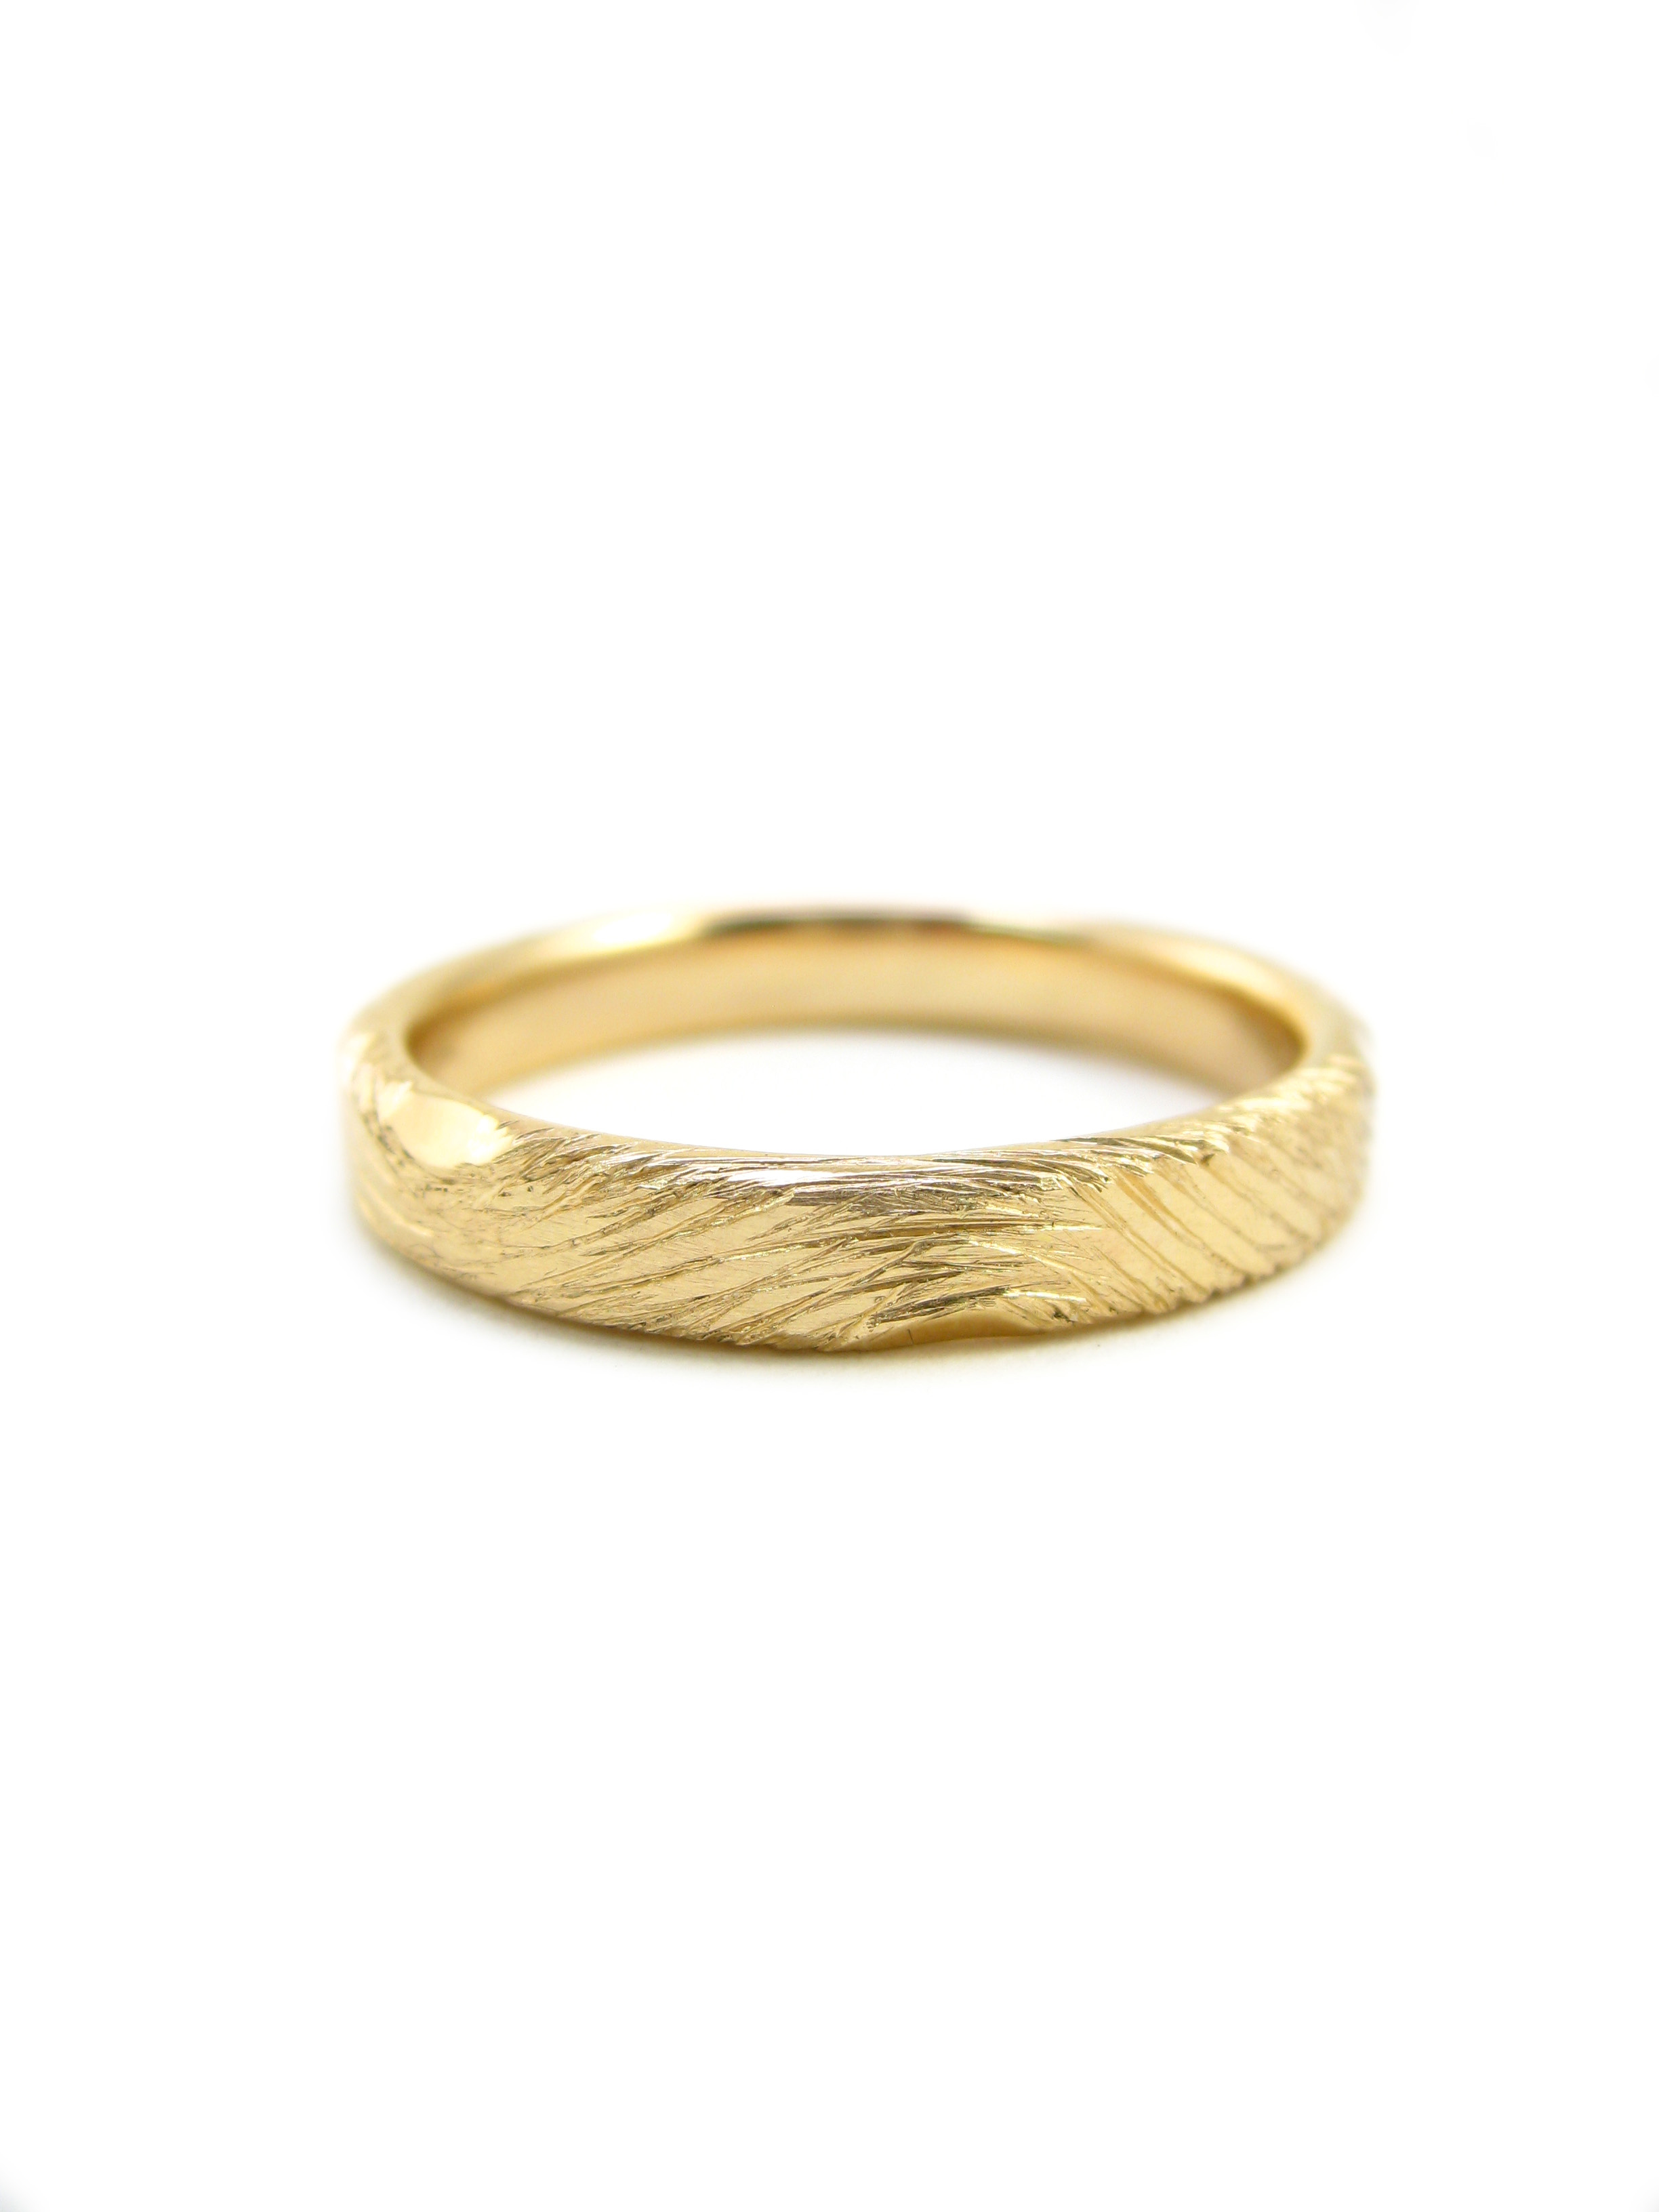 Hand carved wood grain ring in 14 karat YGRI-068-14karatgold.jpg